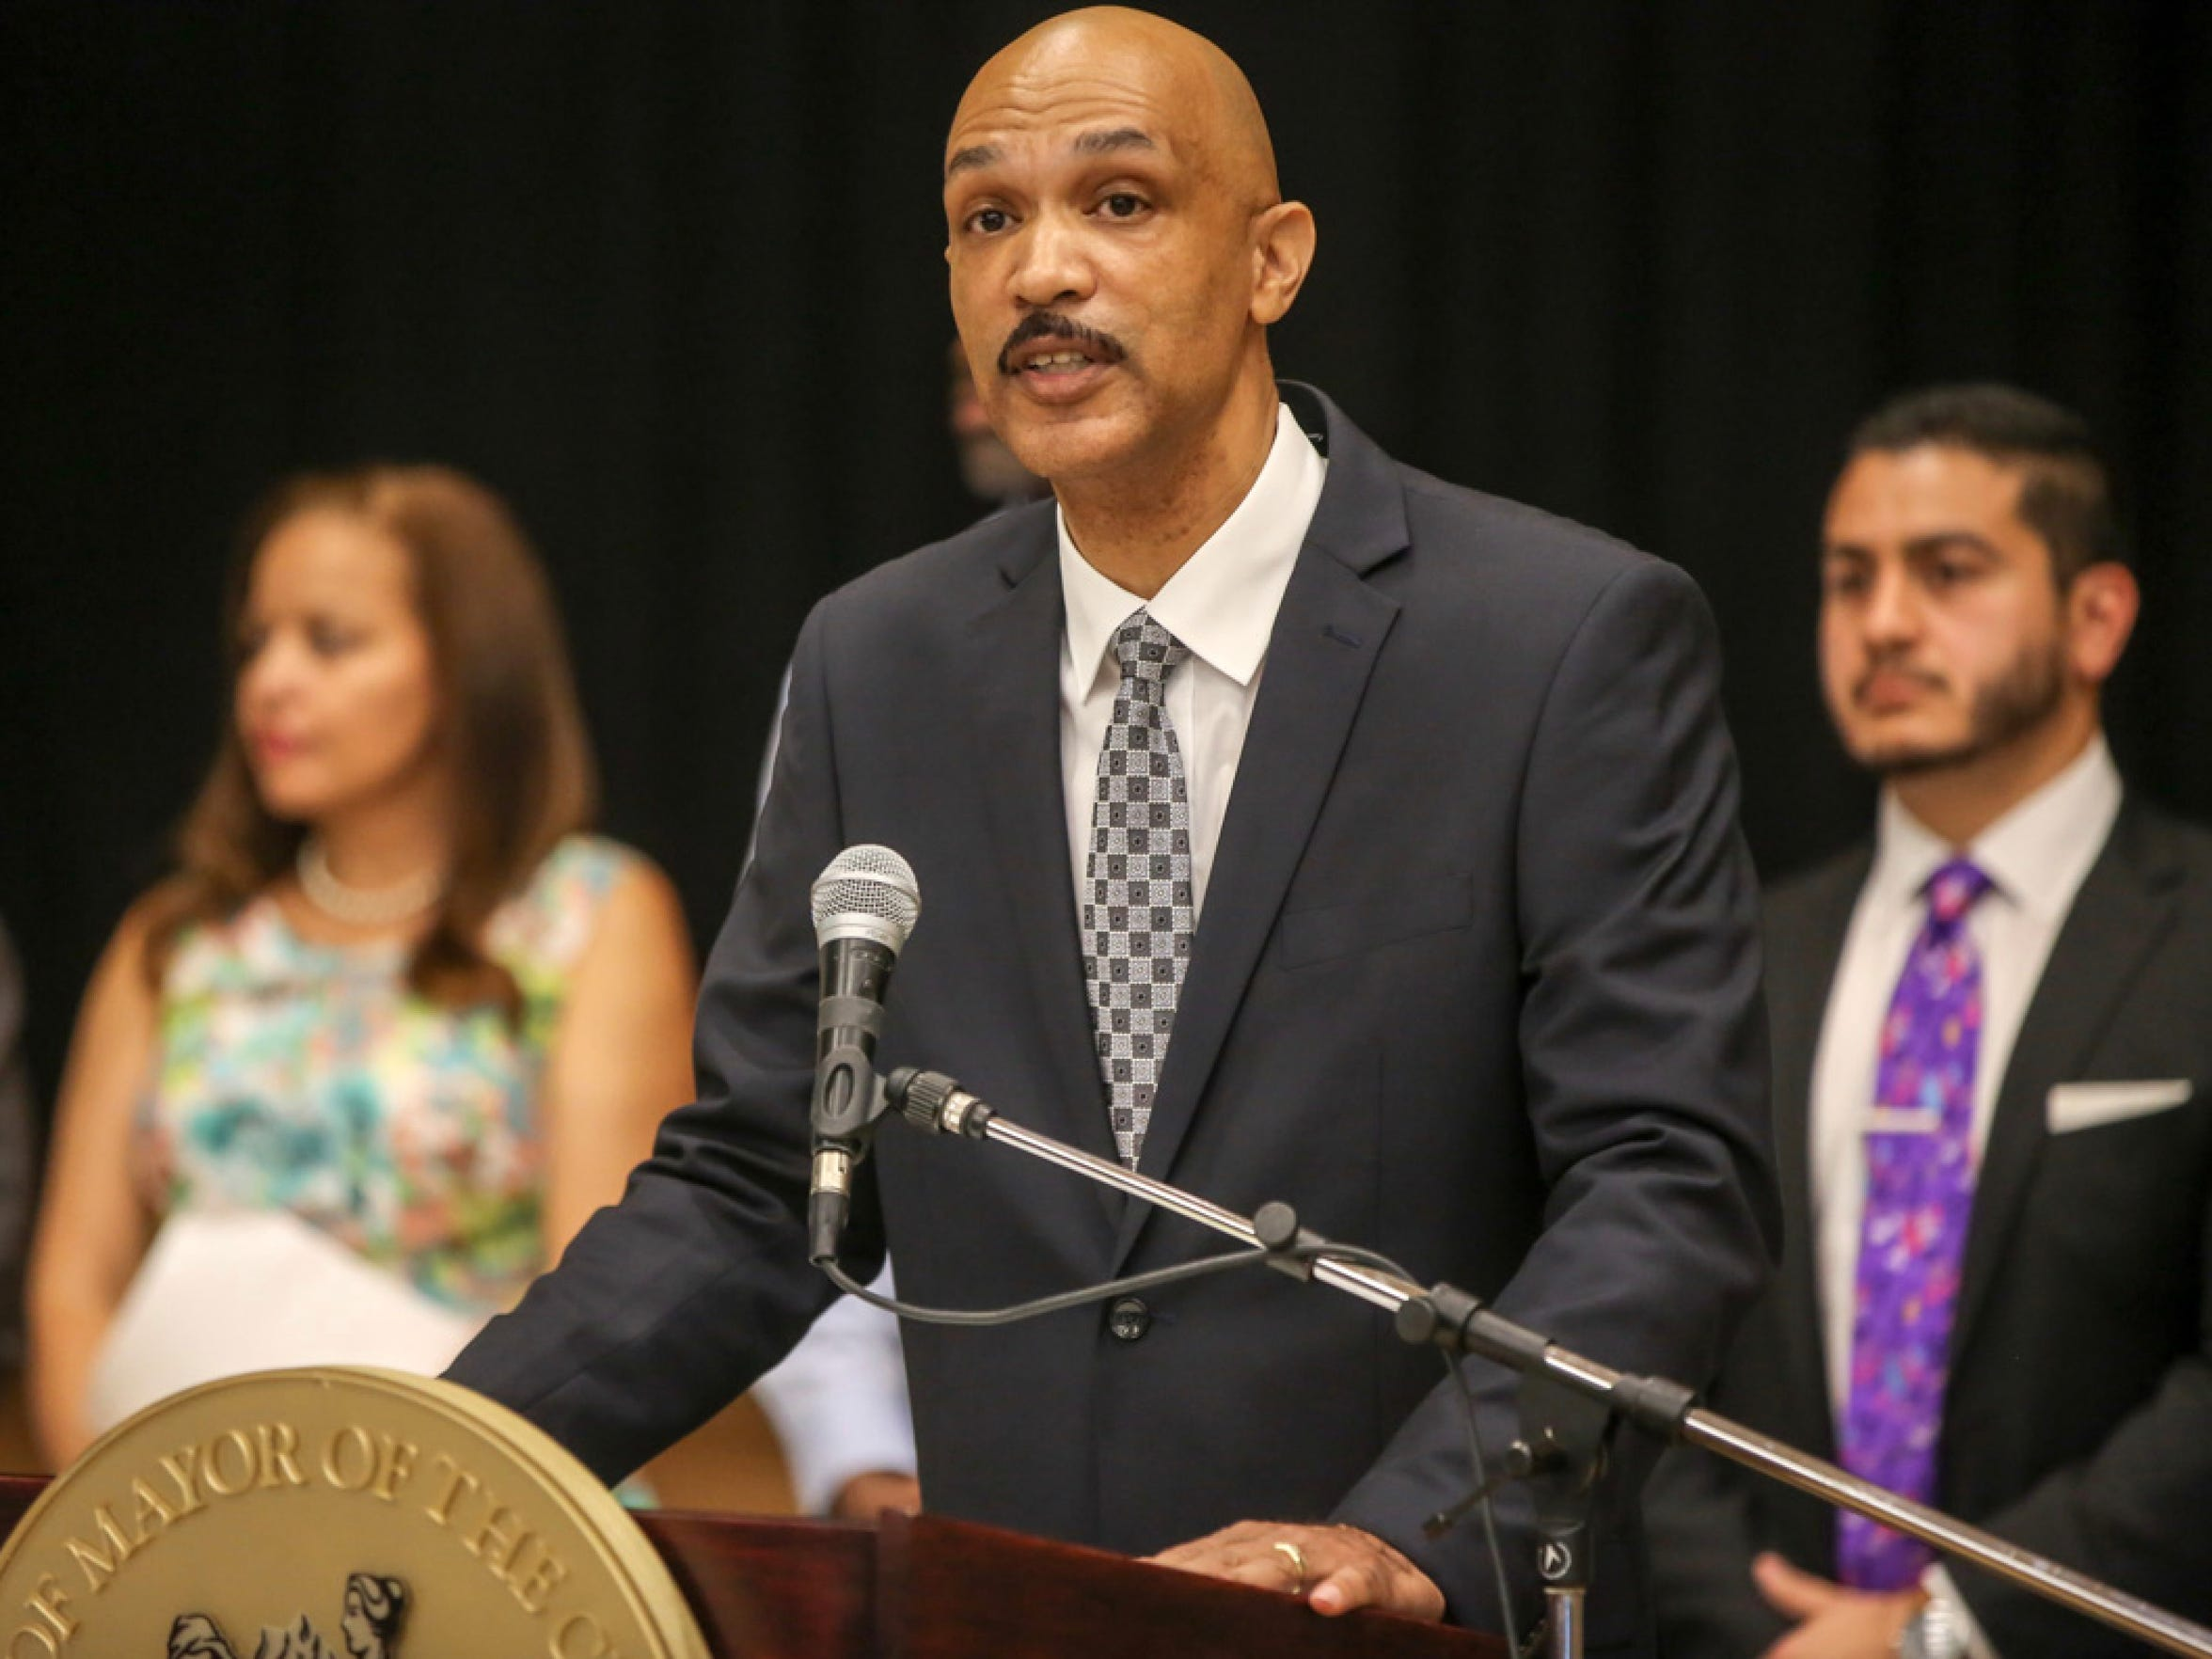 David Bell, Director of Detroit's Buildings, Safety Engineering & Environmental Dept., during a press conference in August  2016.